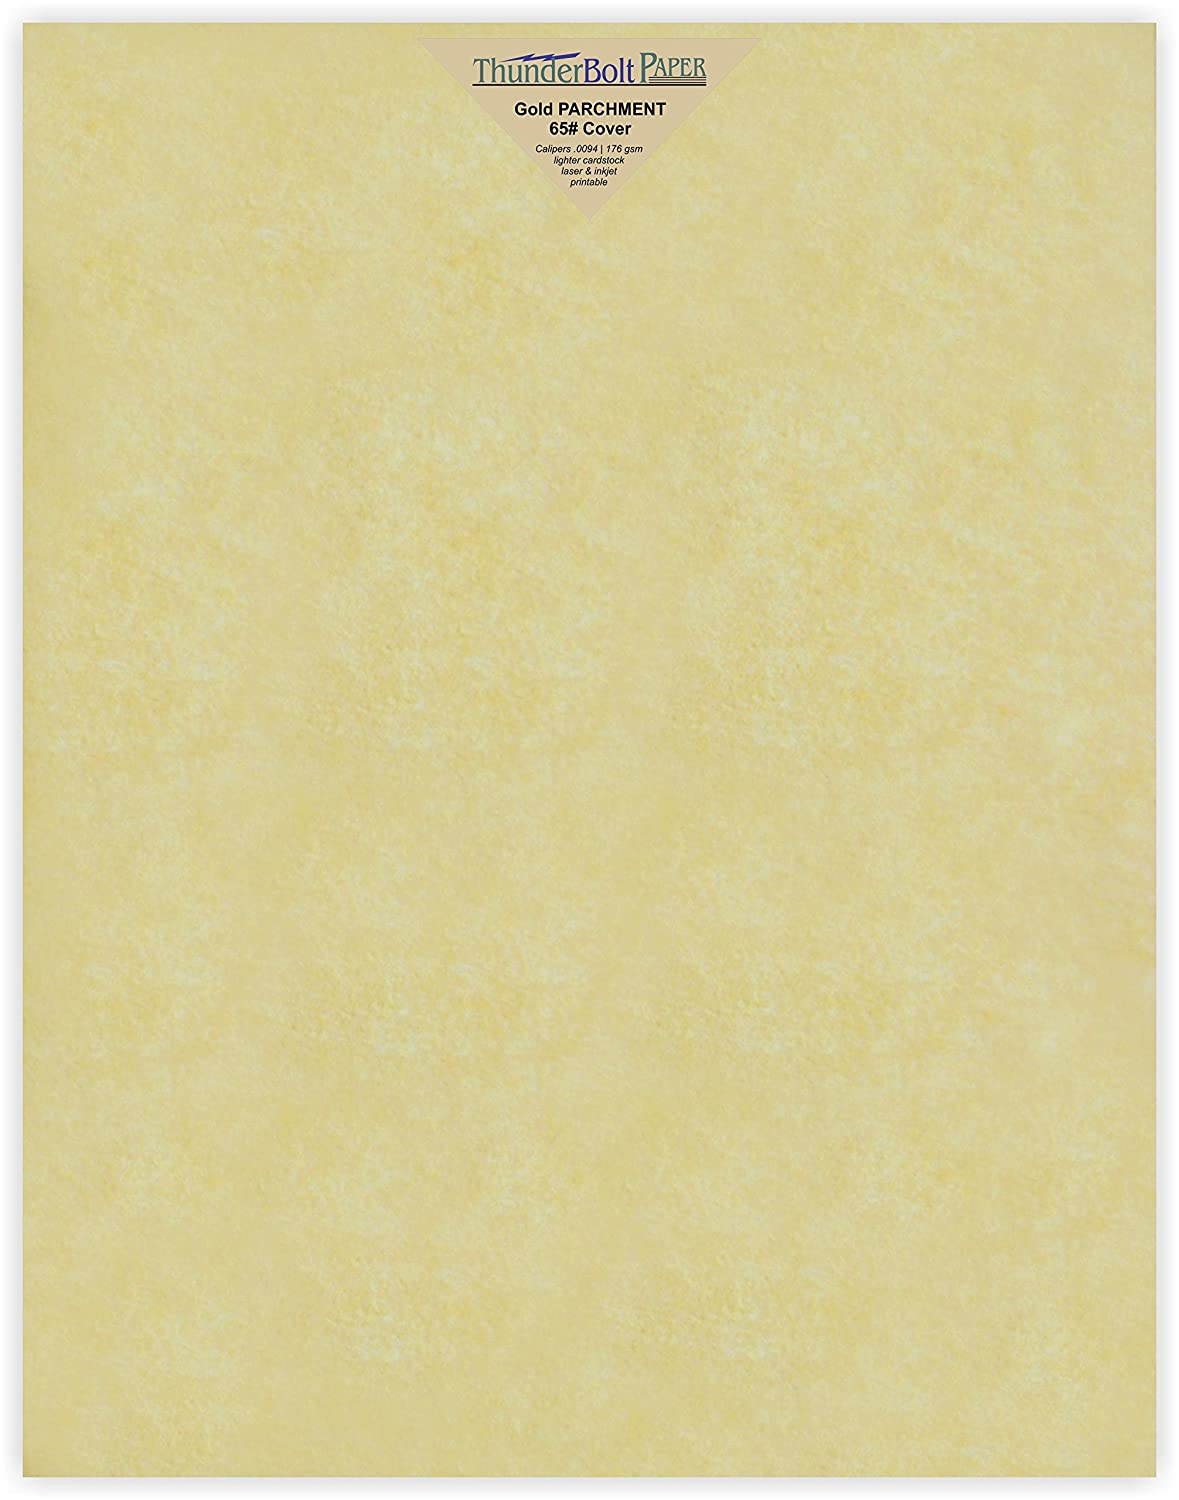 Gold color cardstock paper 5x7 - Amazon Com 25 Gold Parchment 65lb Cover Weight Paper 11 X 14 11x14 Inches Scrapbook Picture Frame Size Printable Cardstock Colored Sheets Old